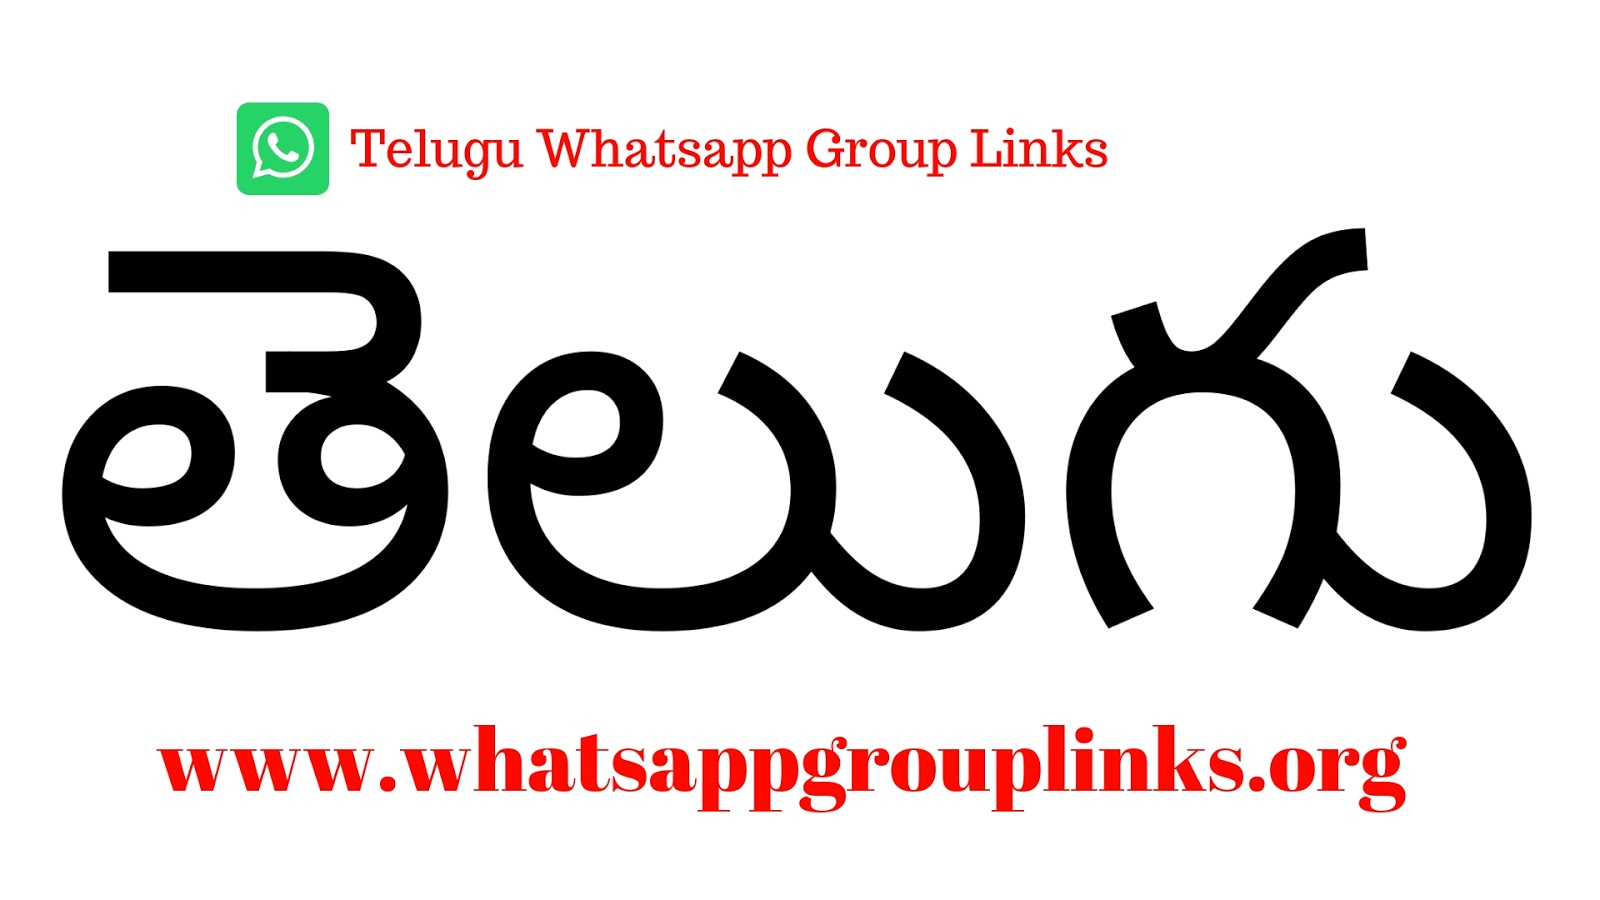 JOIN 150+ TELUGU WHATSAPP GROUP LINKS LIST - Whatsapp Group